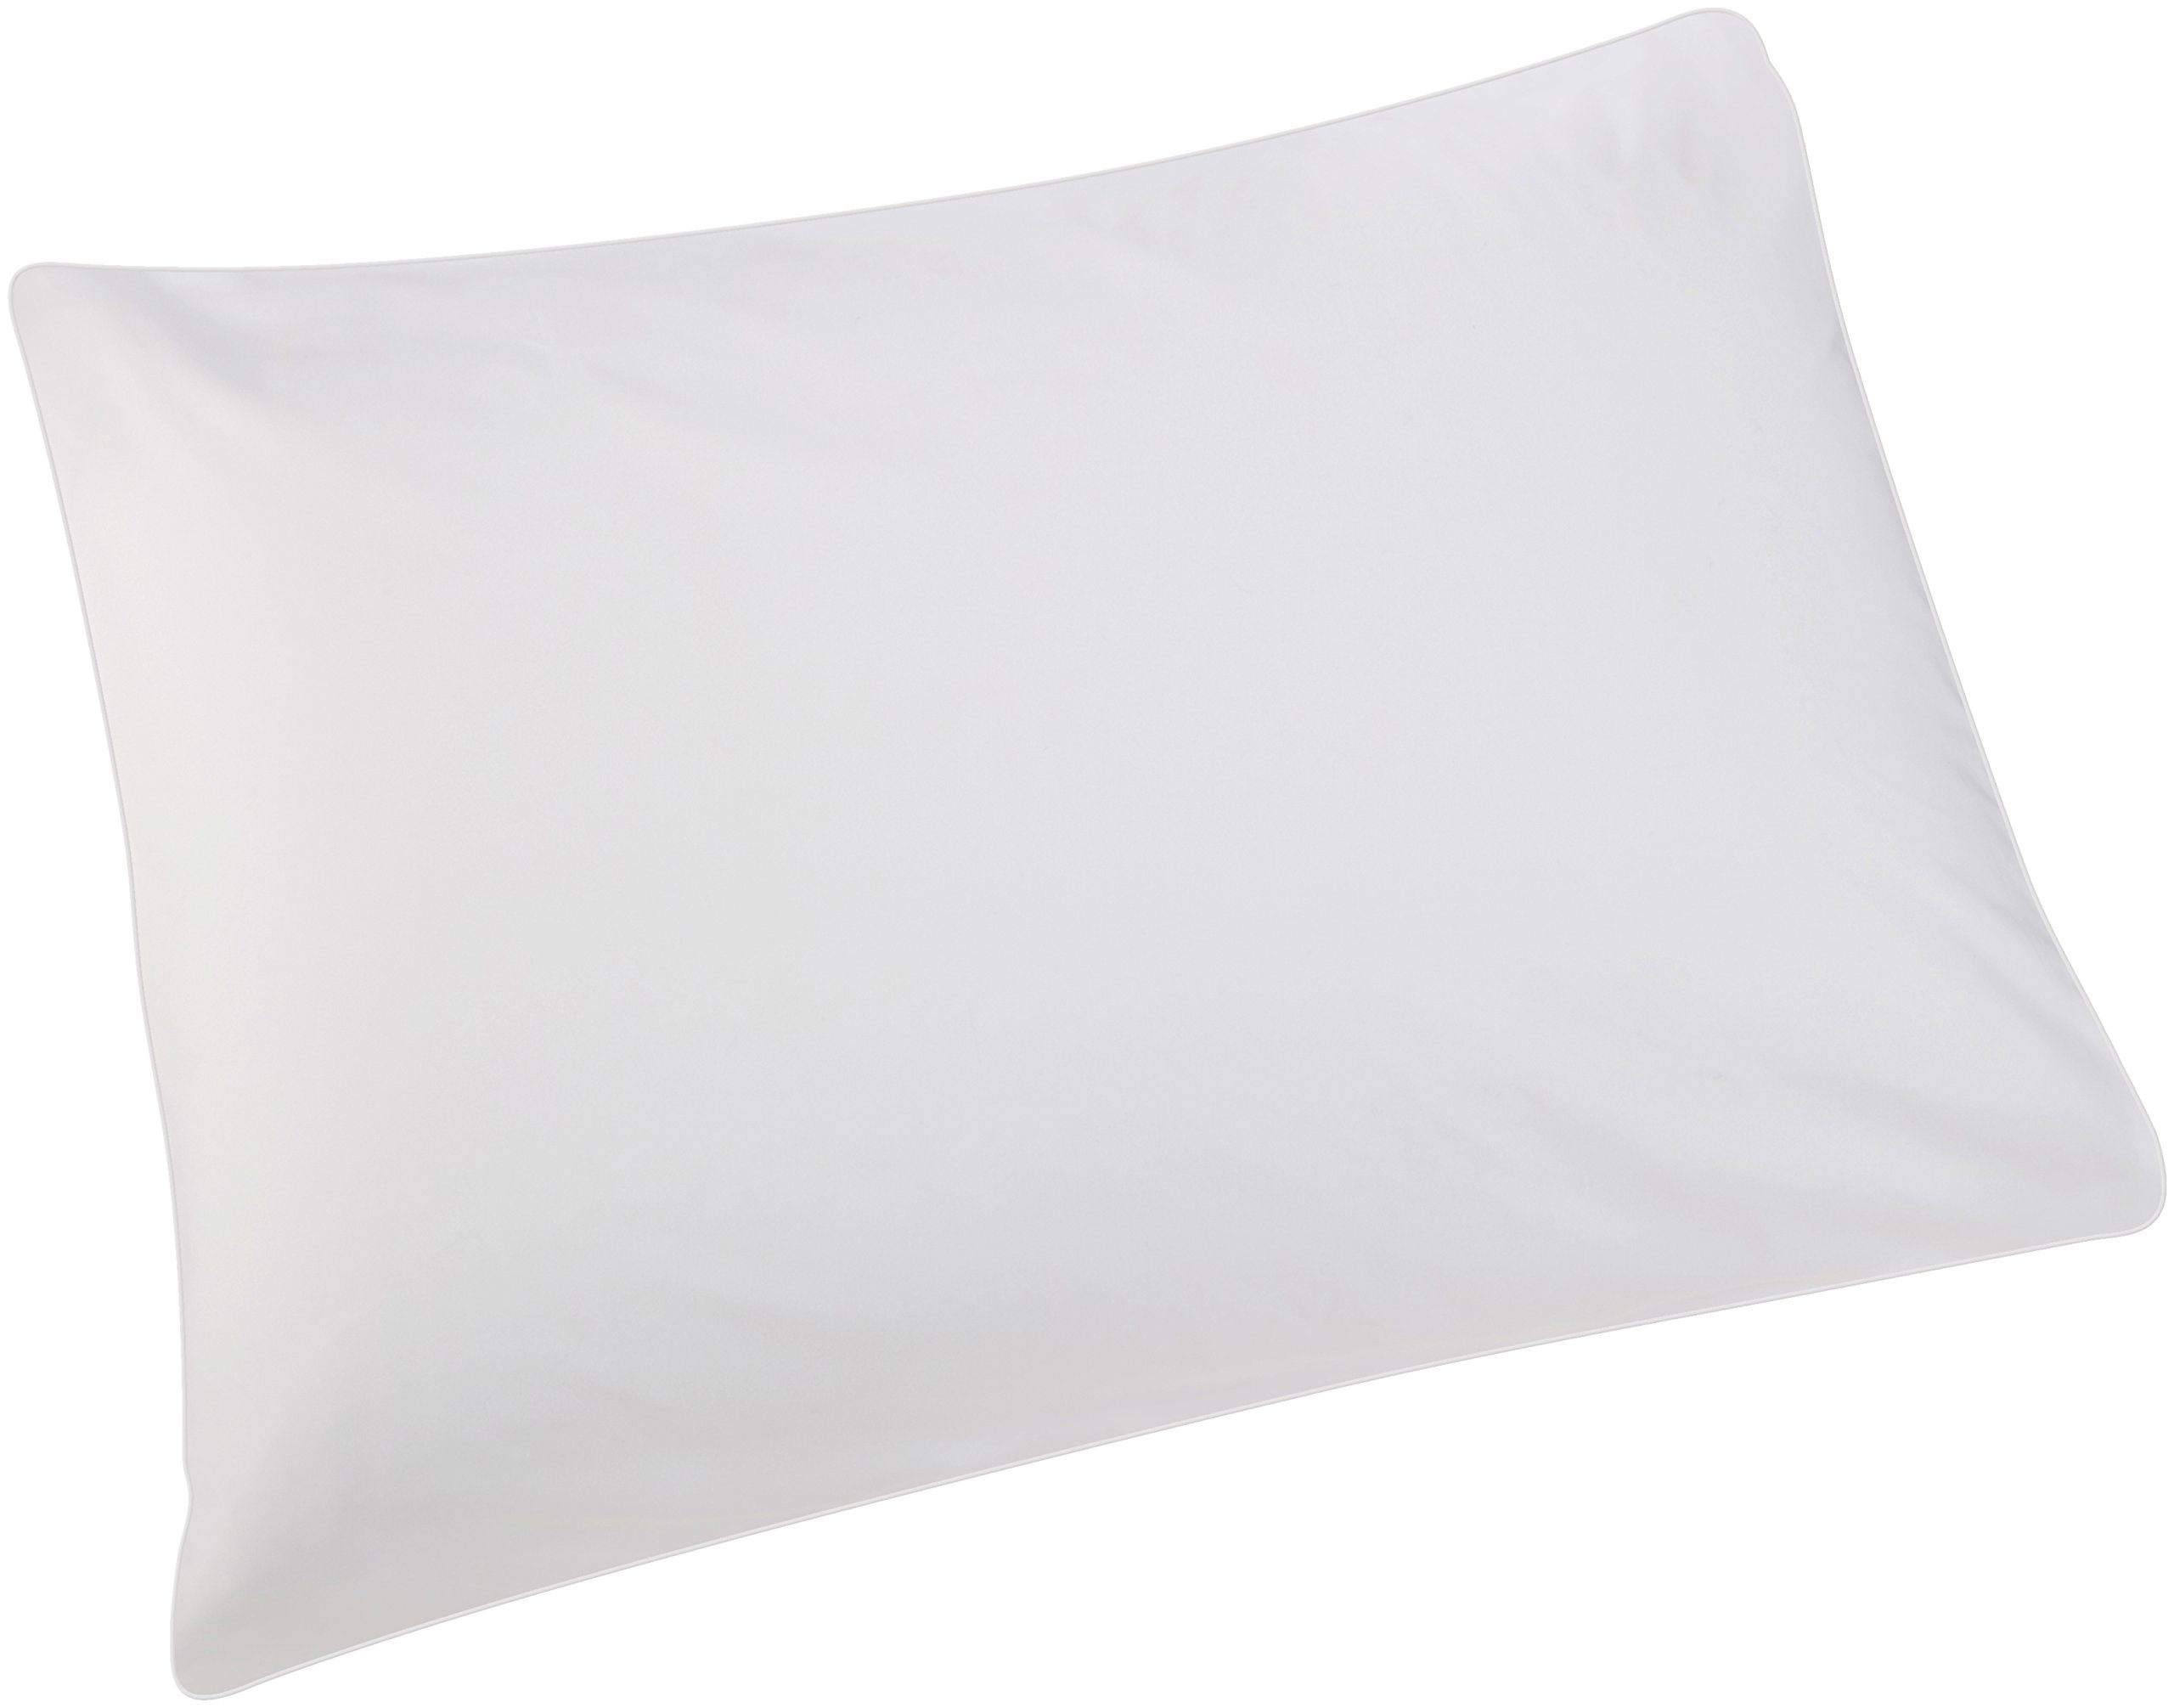 Calvin Klein Home Series 01, King Sham, White